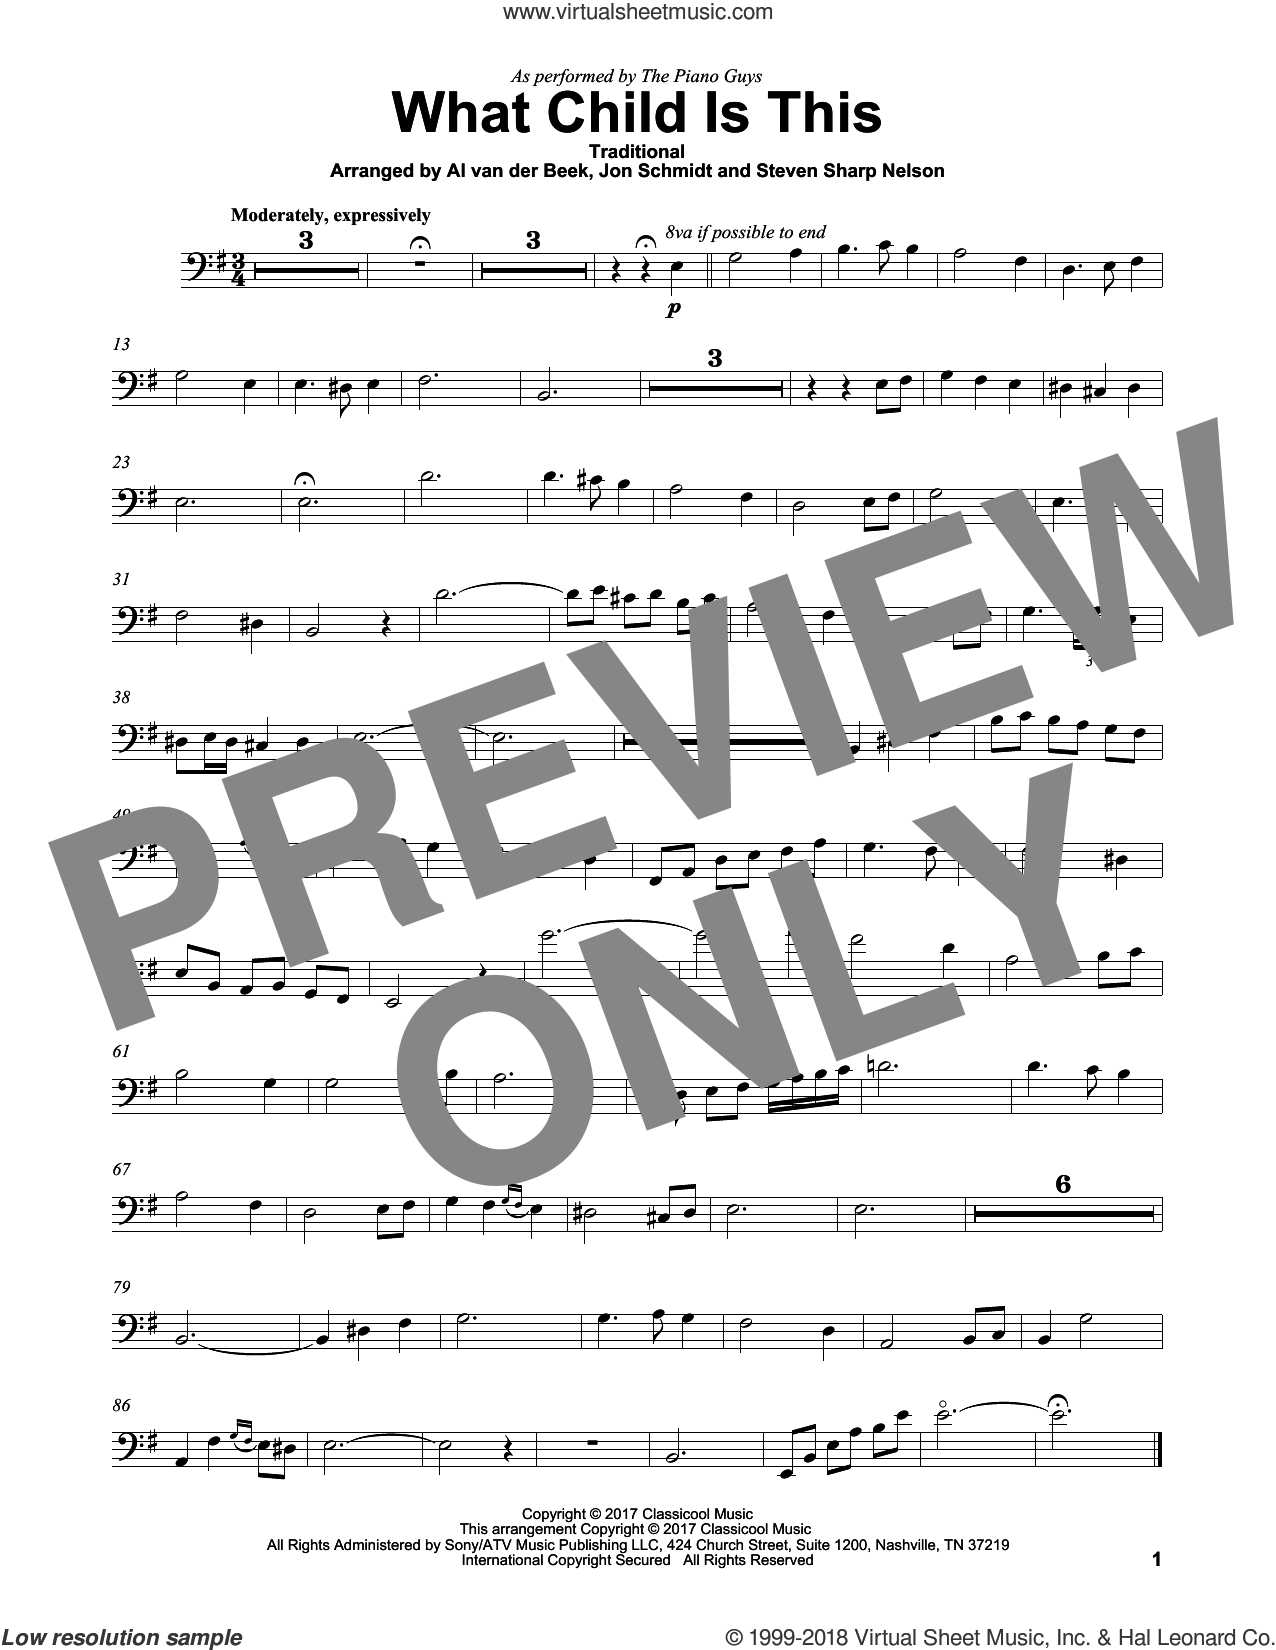 What Child Is This sheet music for cello solo by The Piano Guys, Al van der Beek (arr.), Jon Schmidt (arr.) and Steven Sharp Nelson (arr.), intermediate skill level